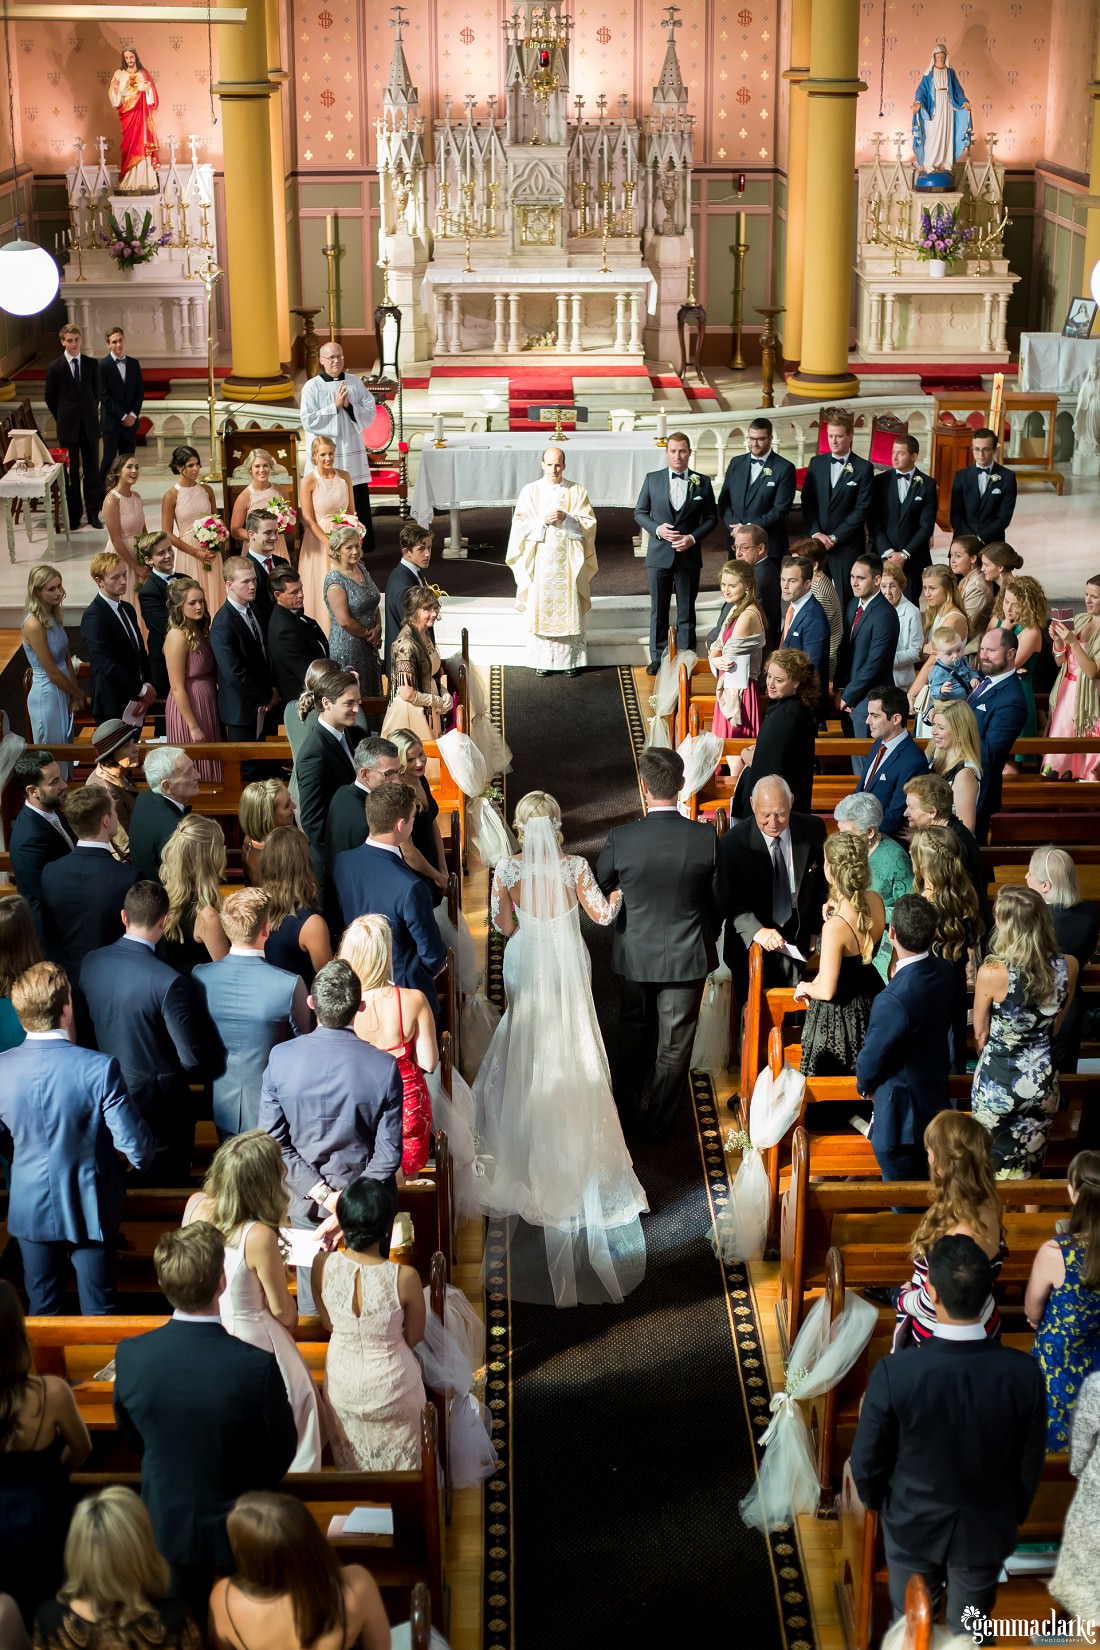 An overhead view of everybody watching a bride being walked down the aisle by her father